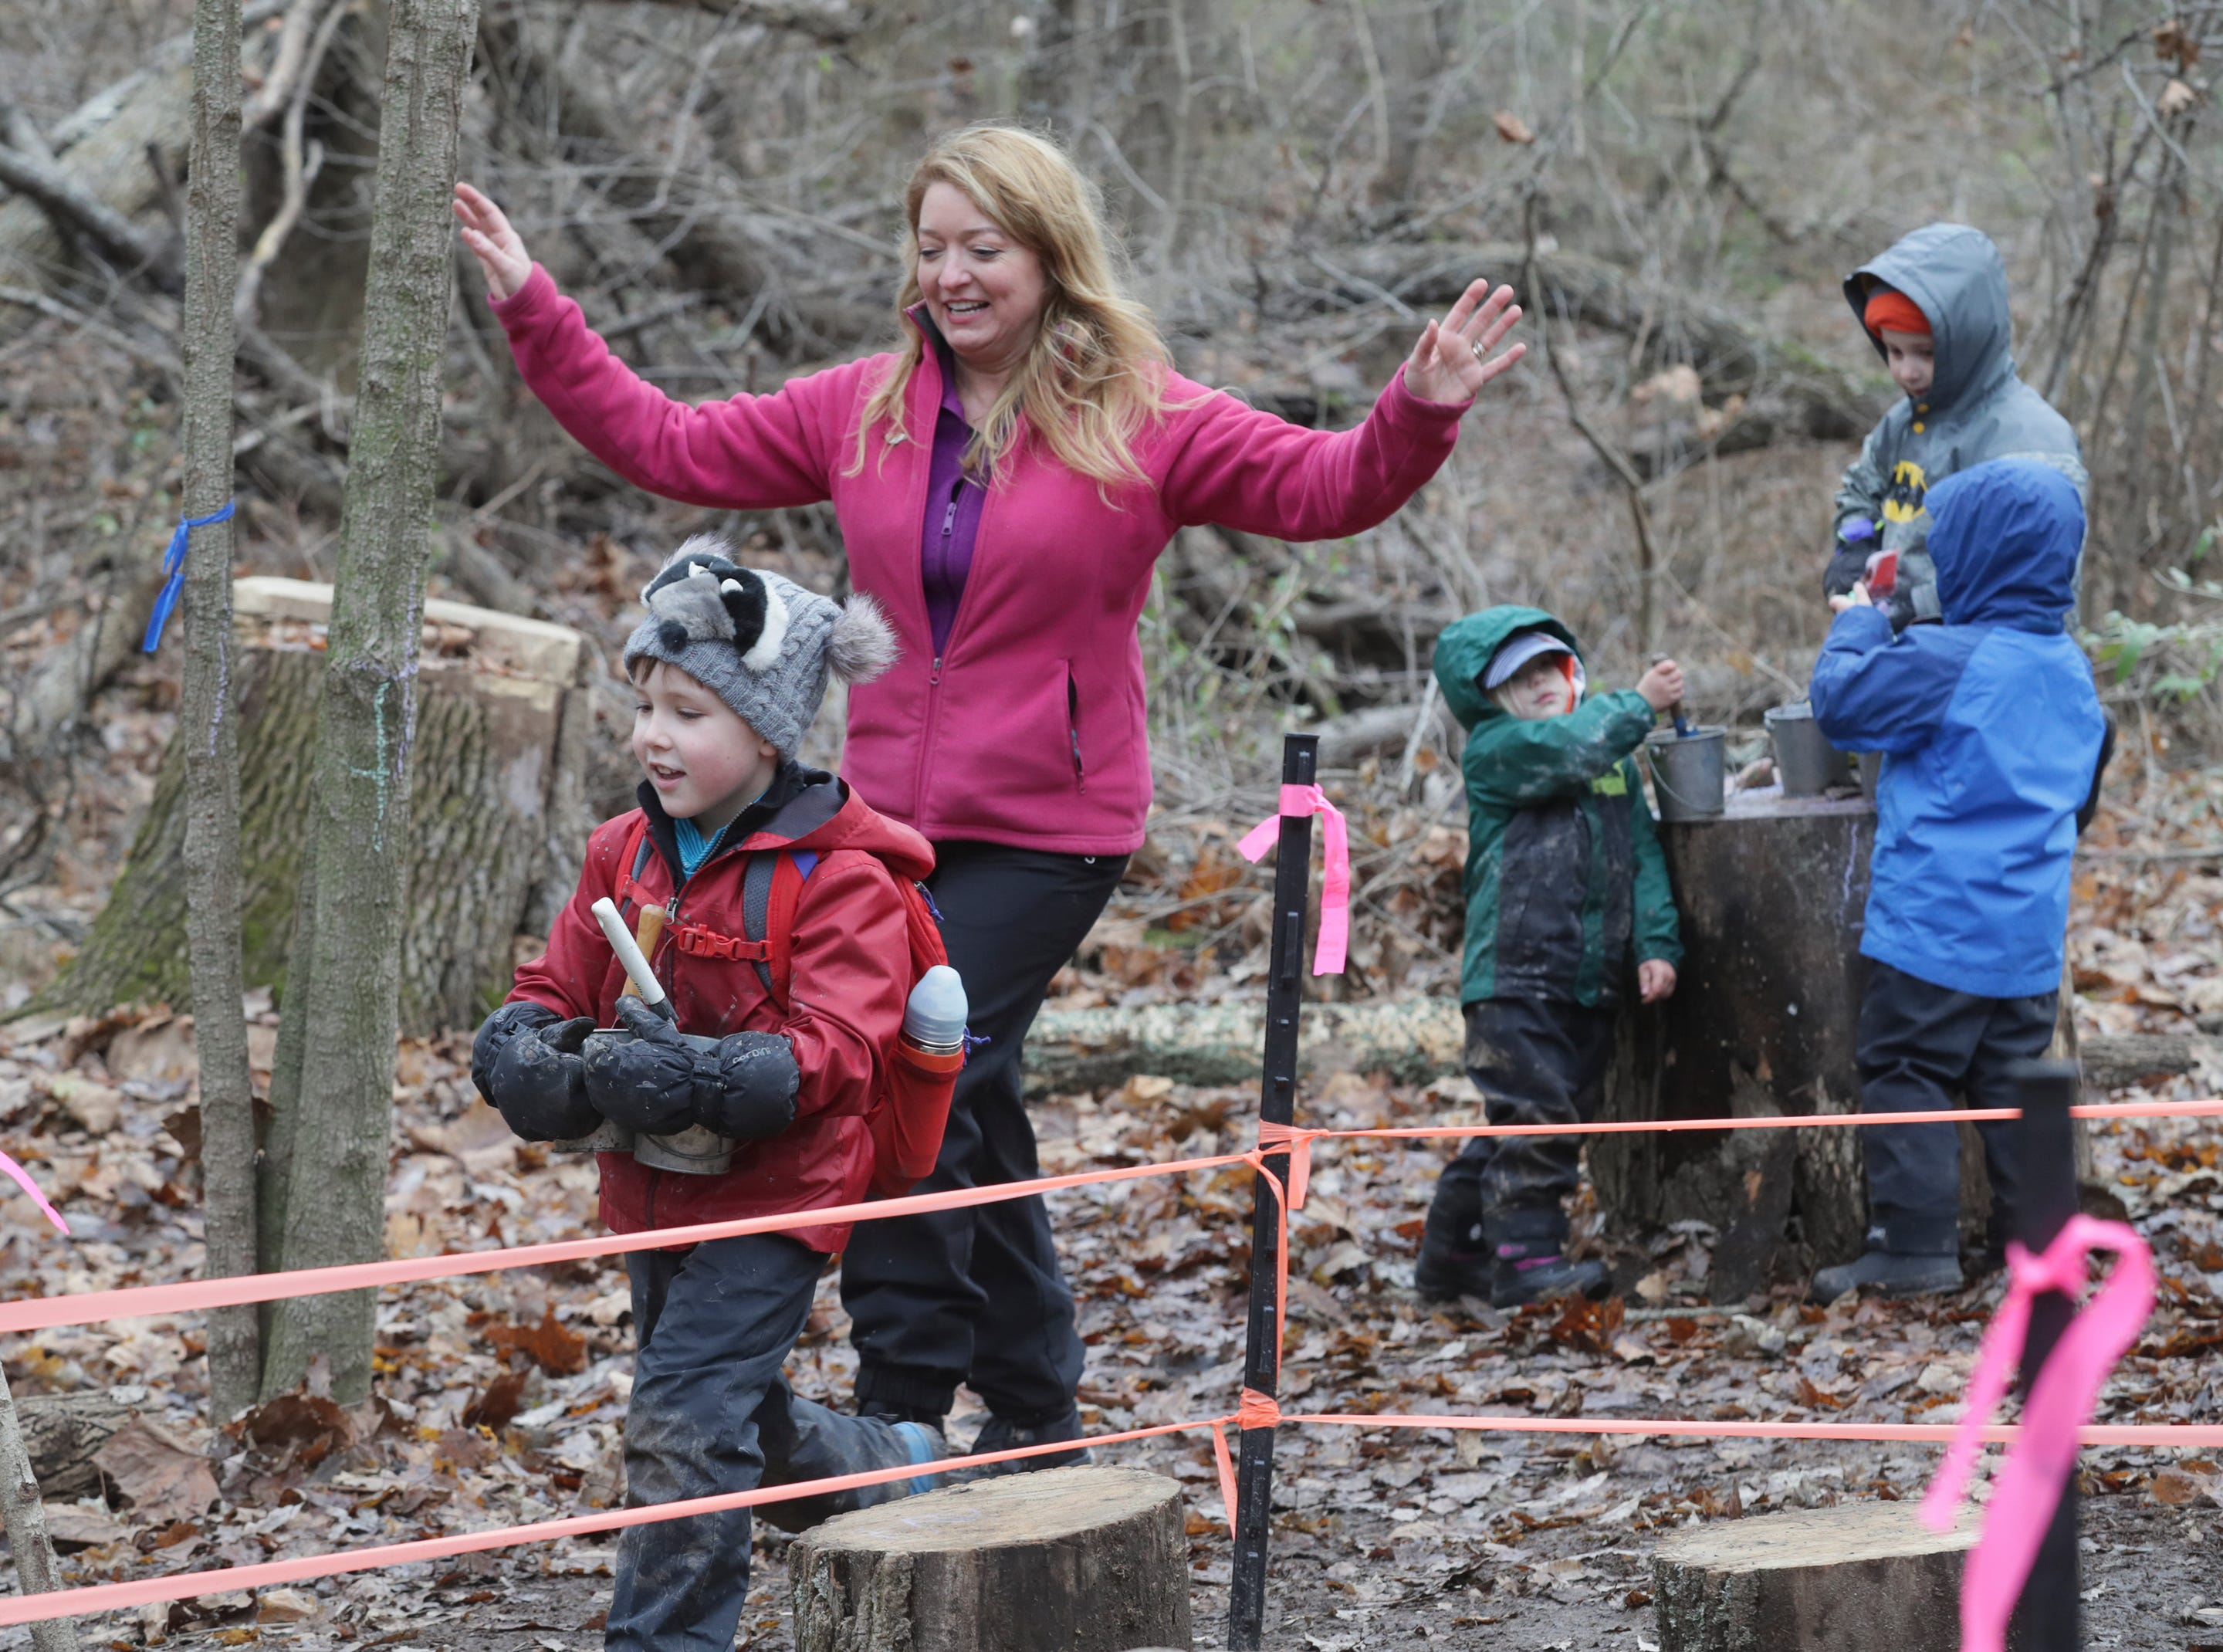 Tavia Cathcart Brown, Executive Director of Creasey Mahan Nature Preserve, works with the students at Thrive Forest School.November 19, 2019